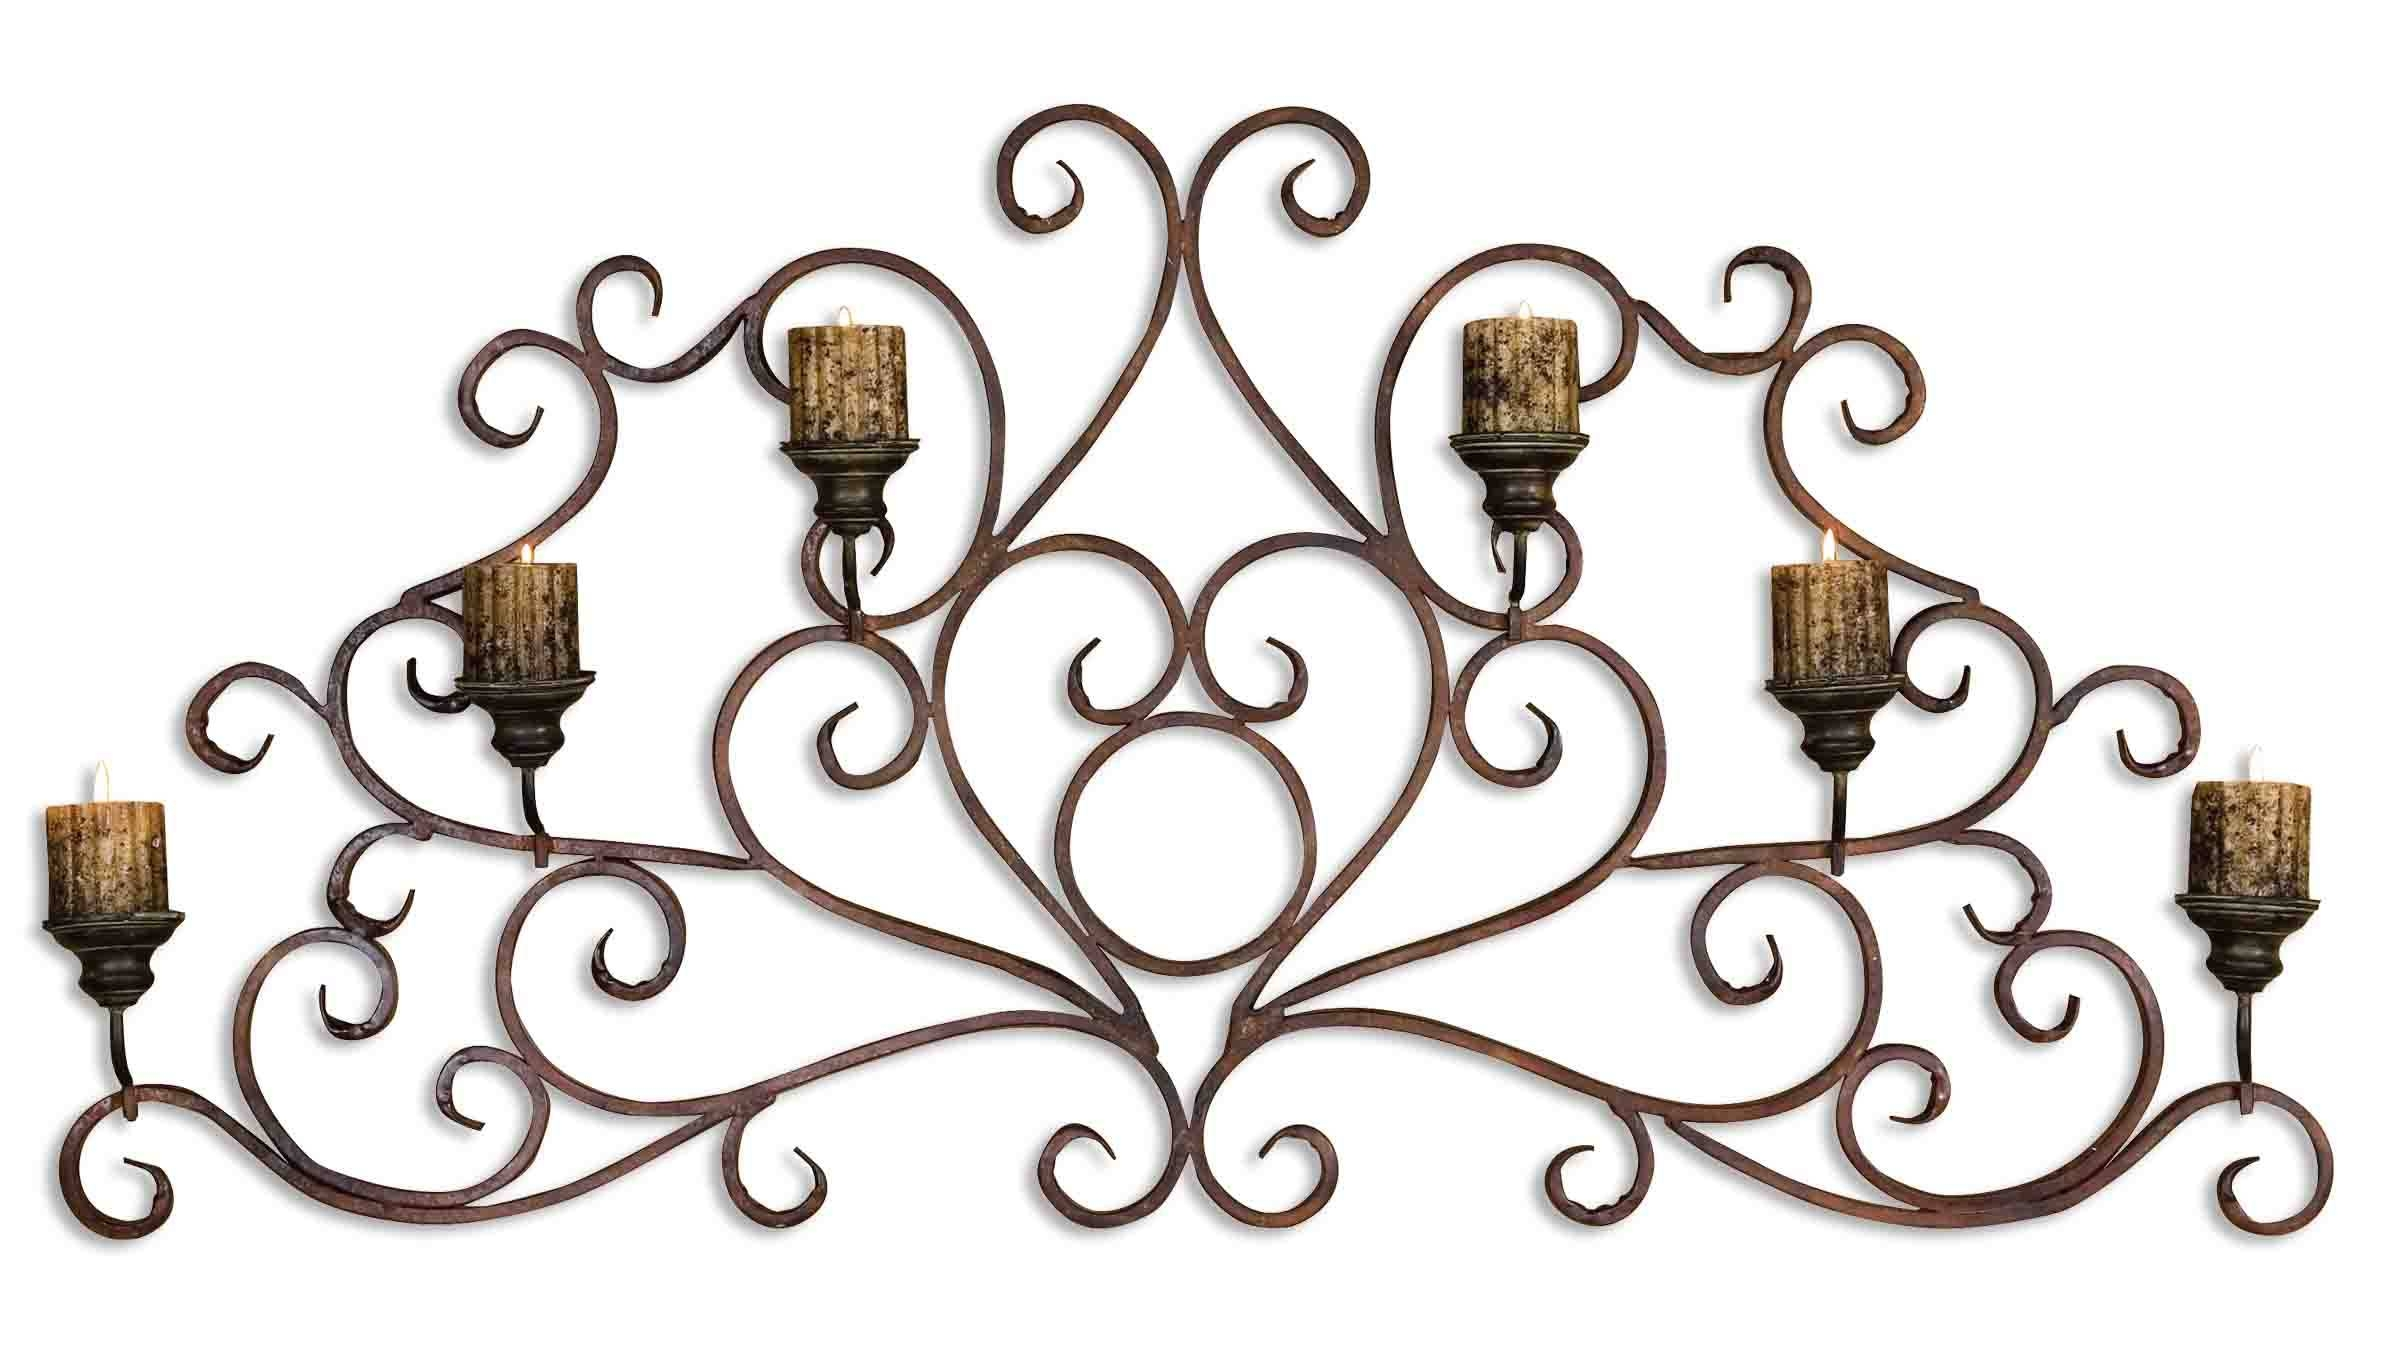 Uttermost Juliana Metal Wall Art Sconce 13446 Inside Current Metal Wall Art With Candles (View 12 of 20)